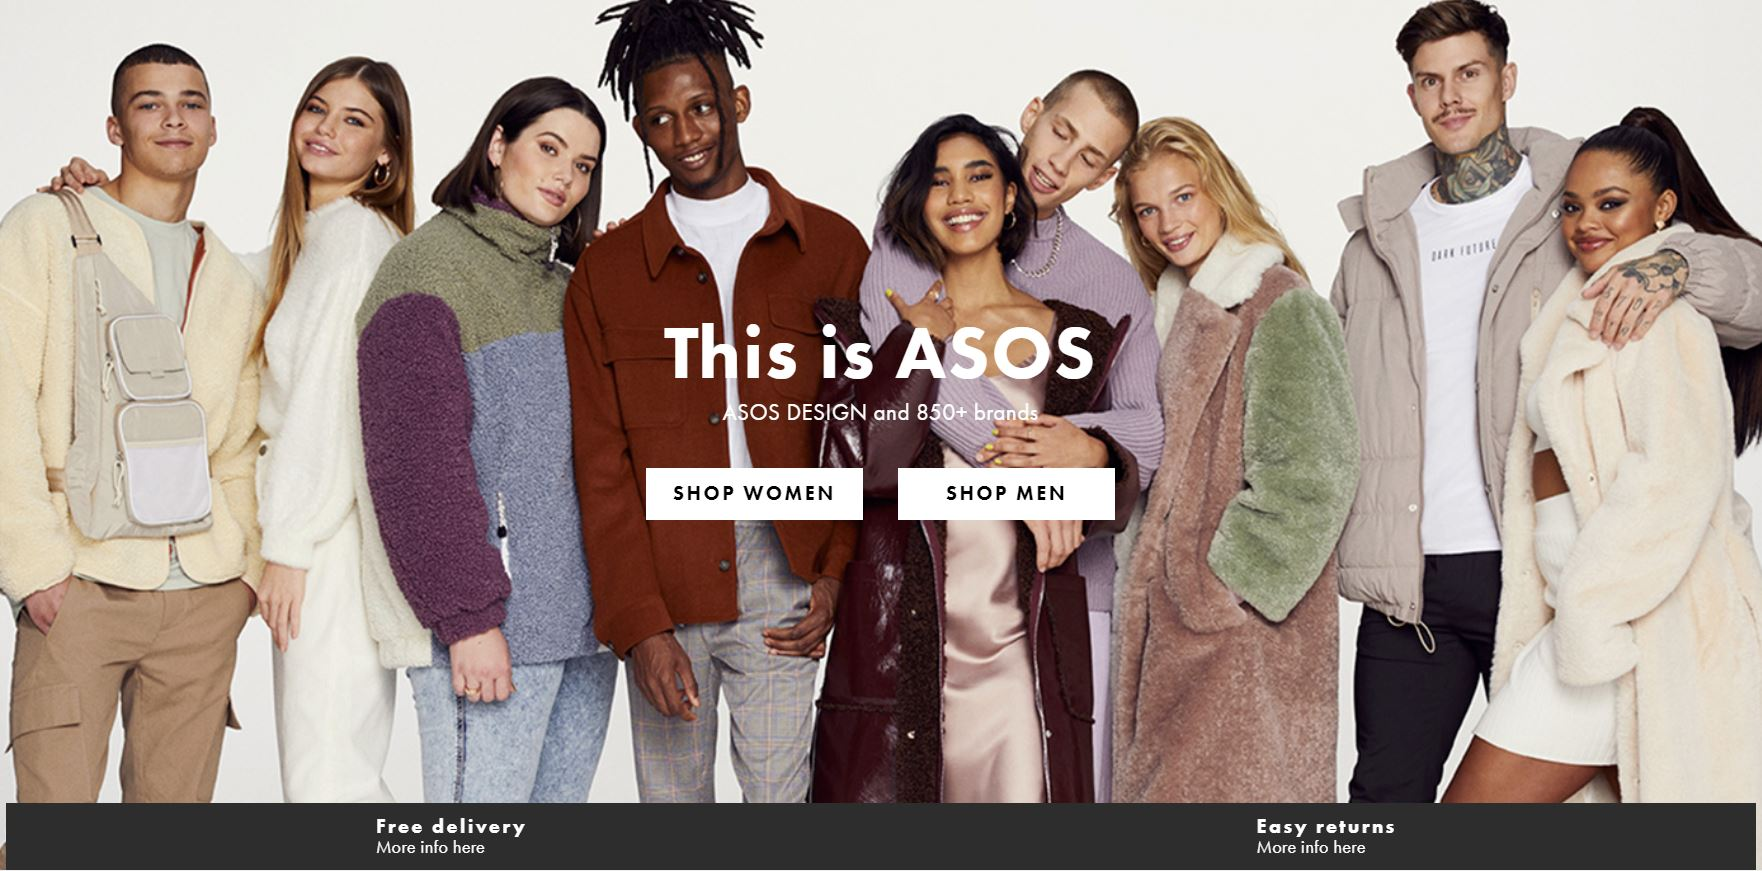 asos-black-friday-2019-prosfores-royxa-papoytsia-ekptoseis-blackfriday-asoscom